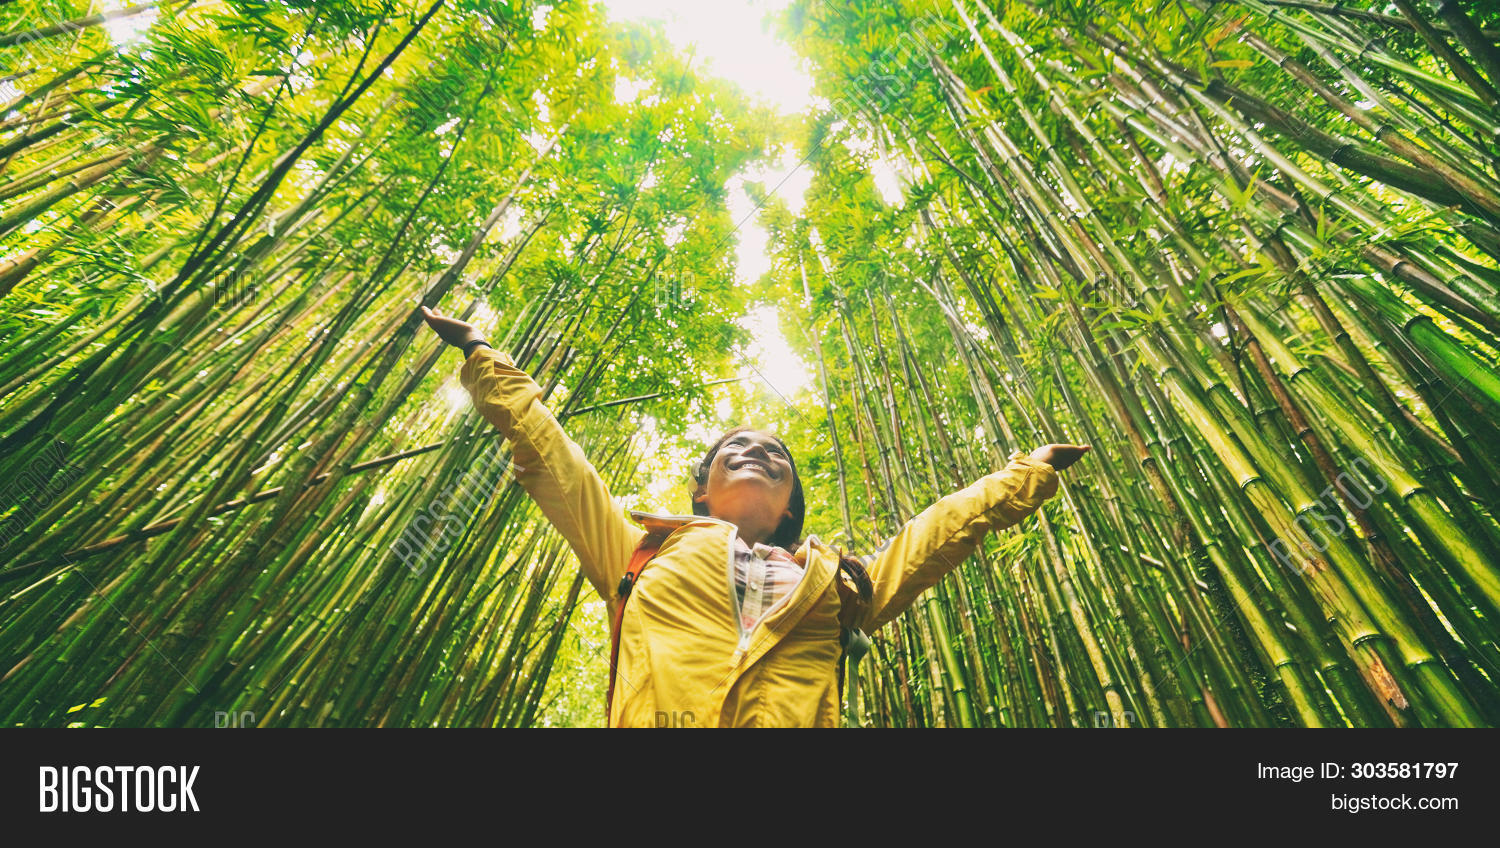 Sustainable eco-friendly travel tourist hiker walking in natural bamboo forest happy with arms up in